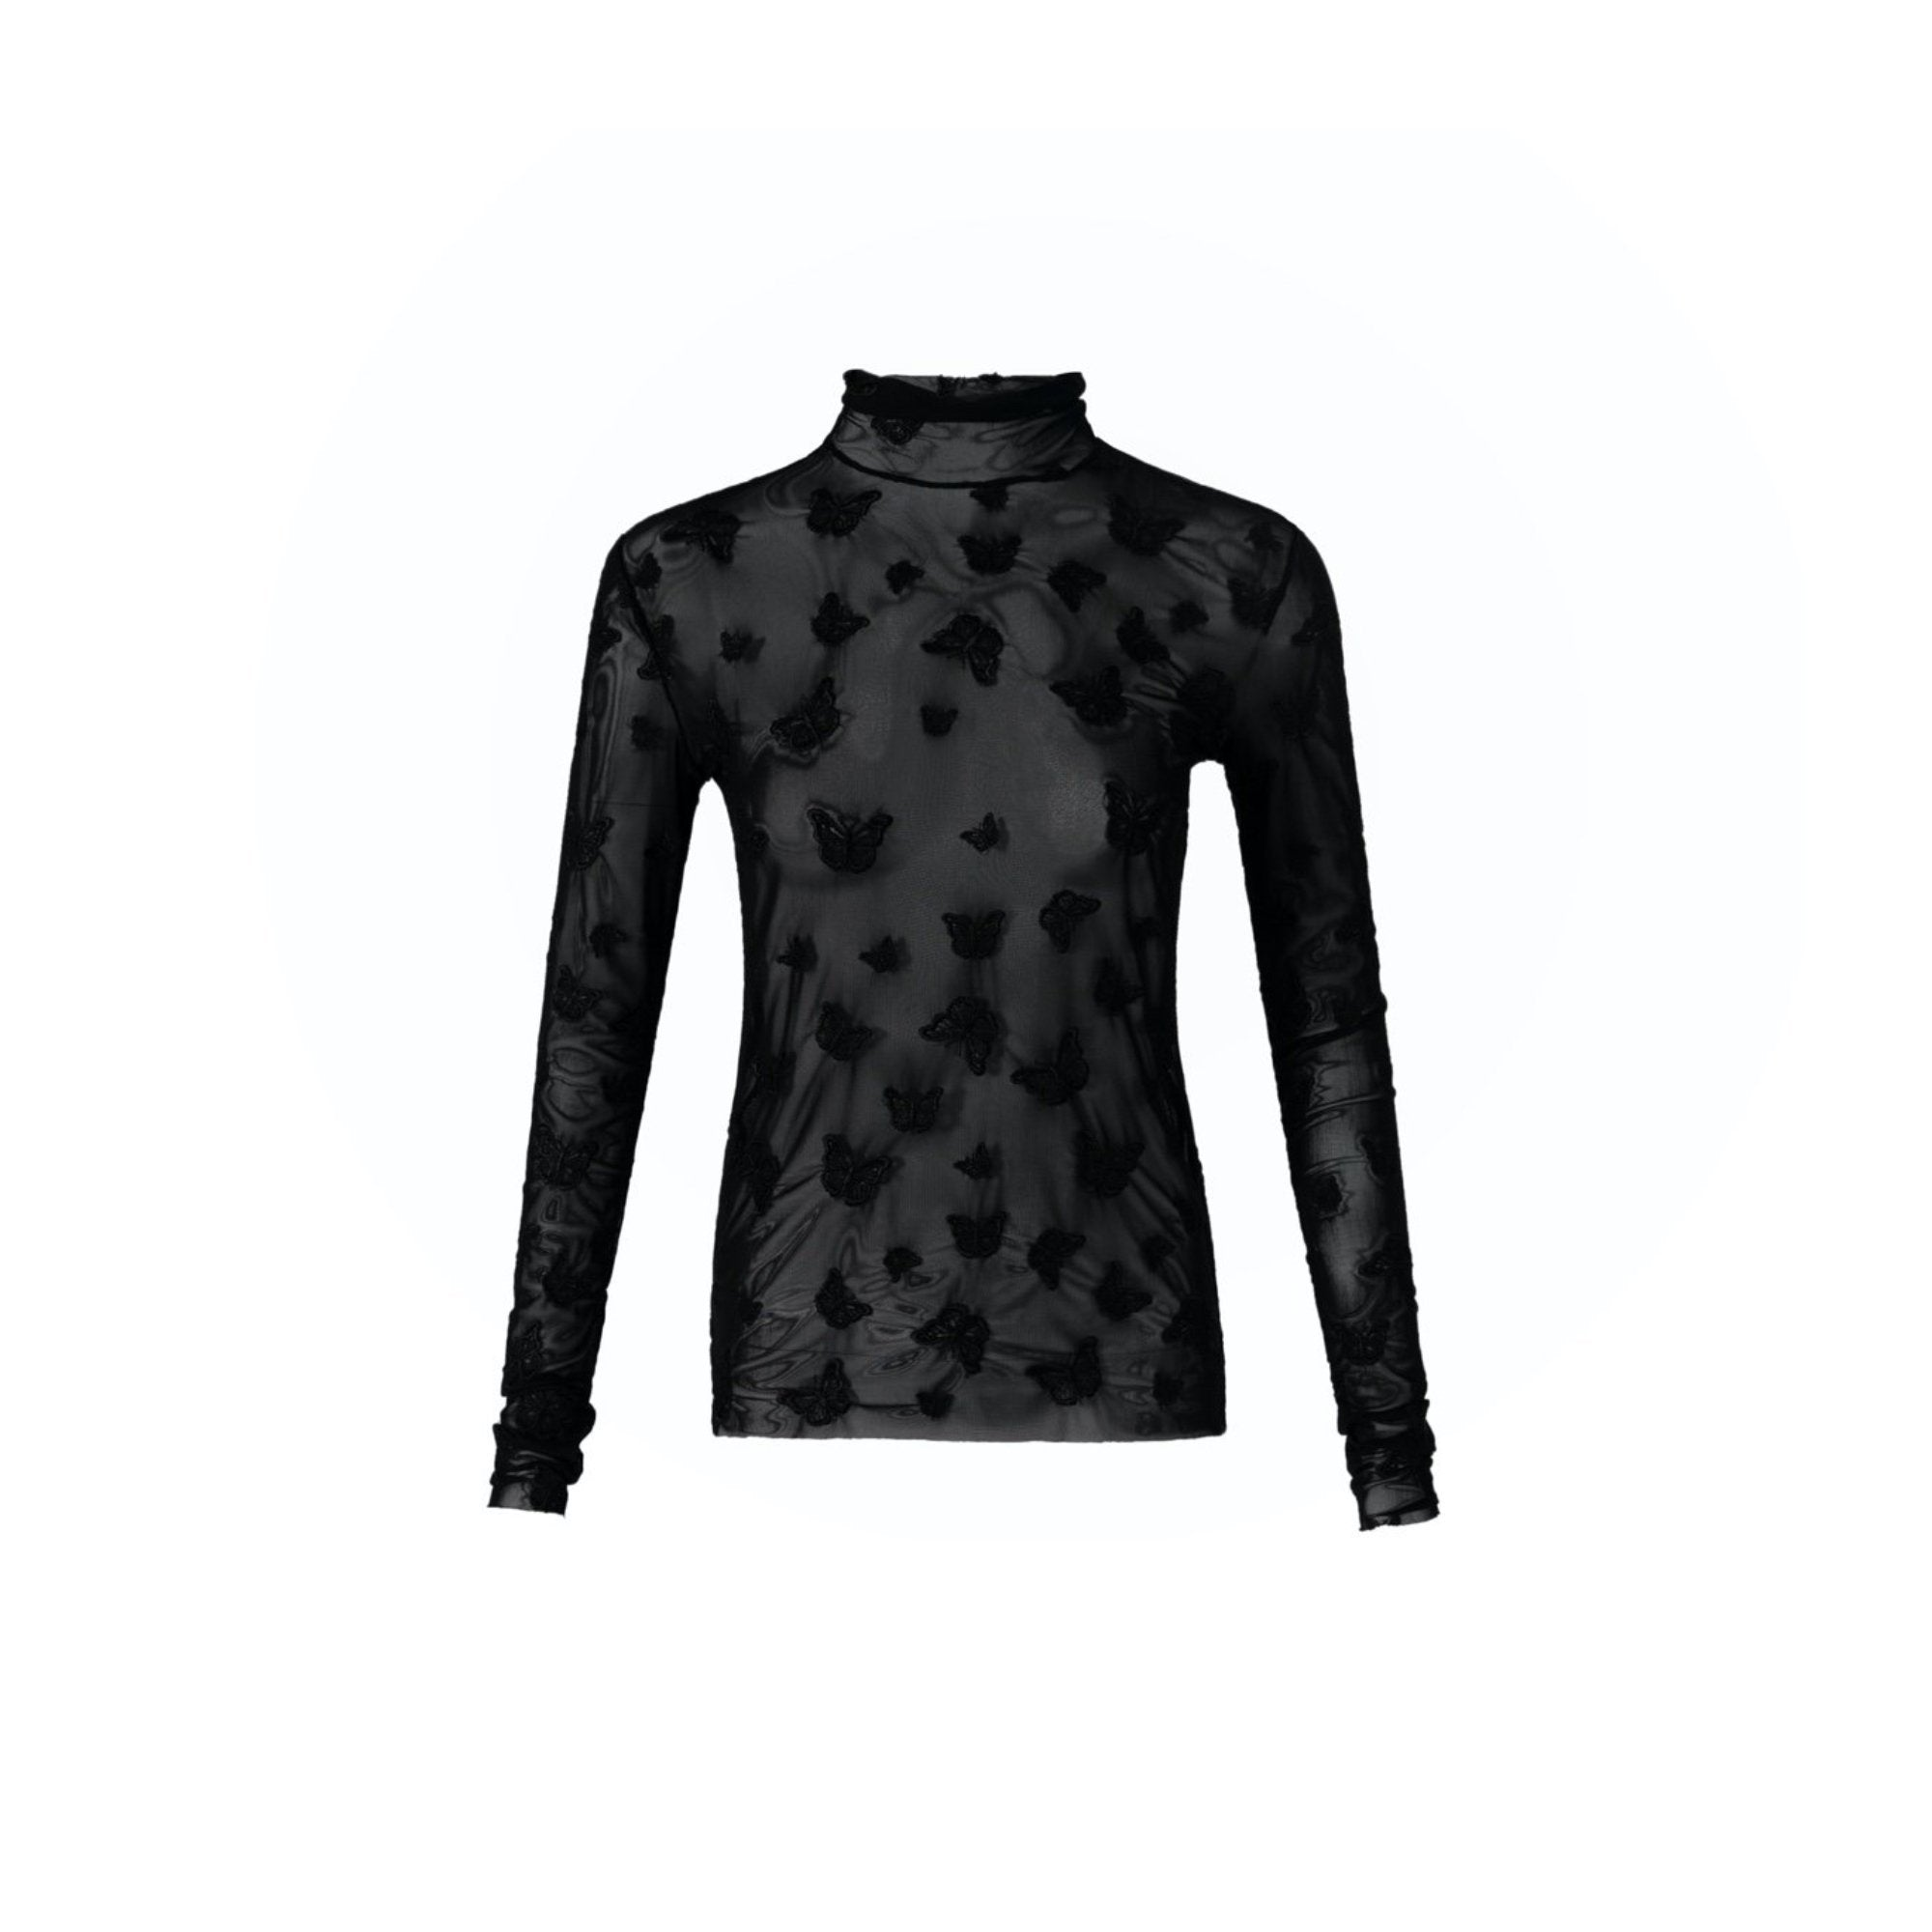 13 DE MARZO Dark Butterfly Embroidered Translucence Undershirt | MADA IN CHINA